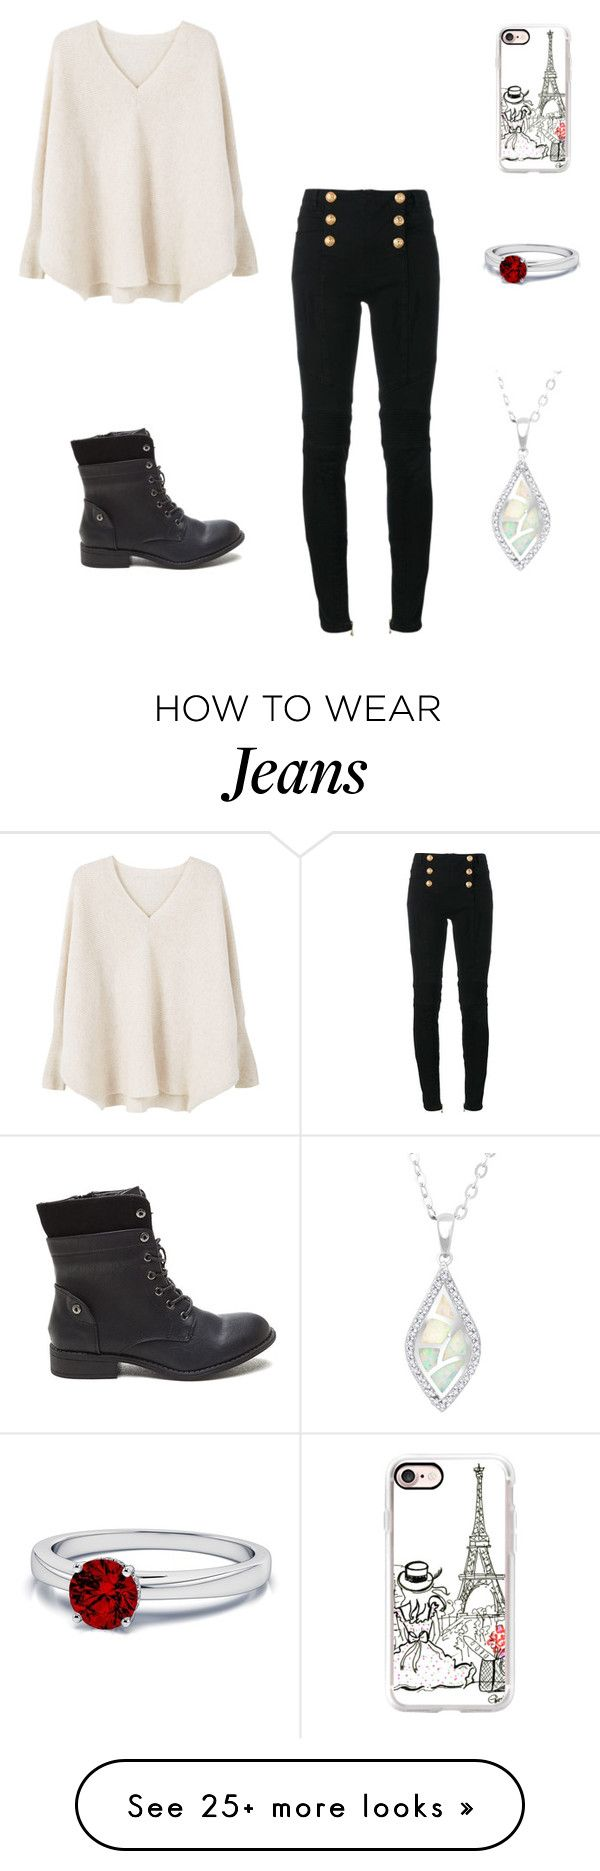 """High waisted black jeans"" by yyyyyx on Polyvore featuring Casetify, La Preciosa, MANGO and Balmain"